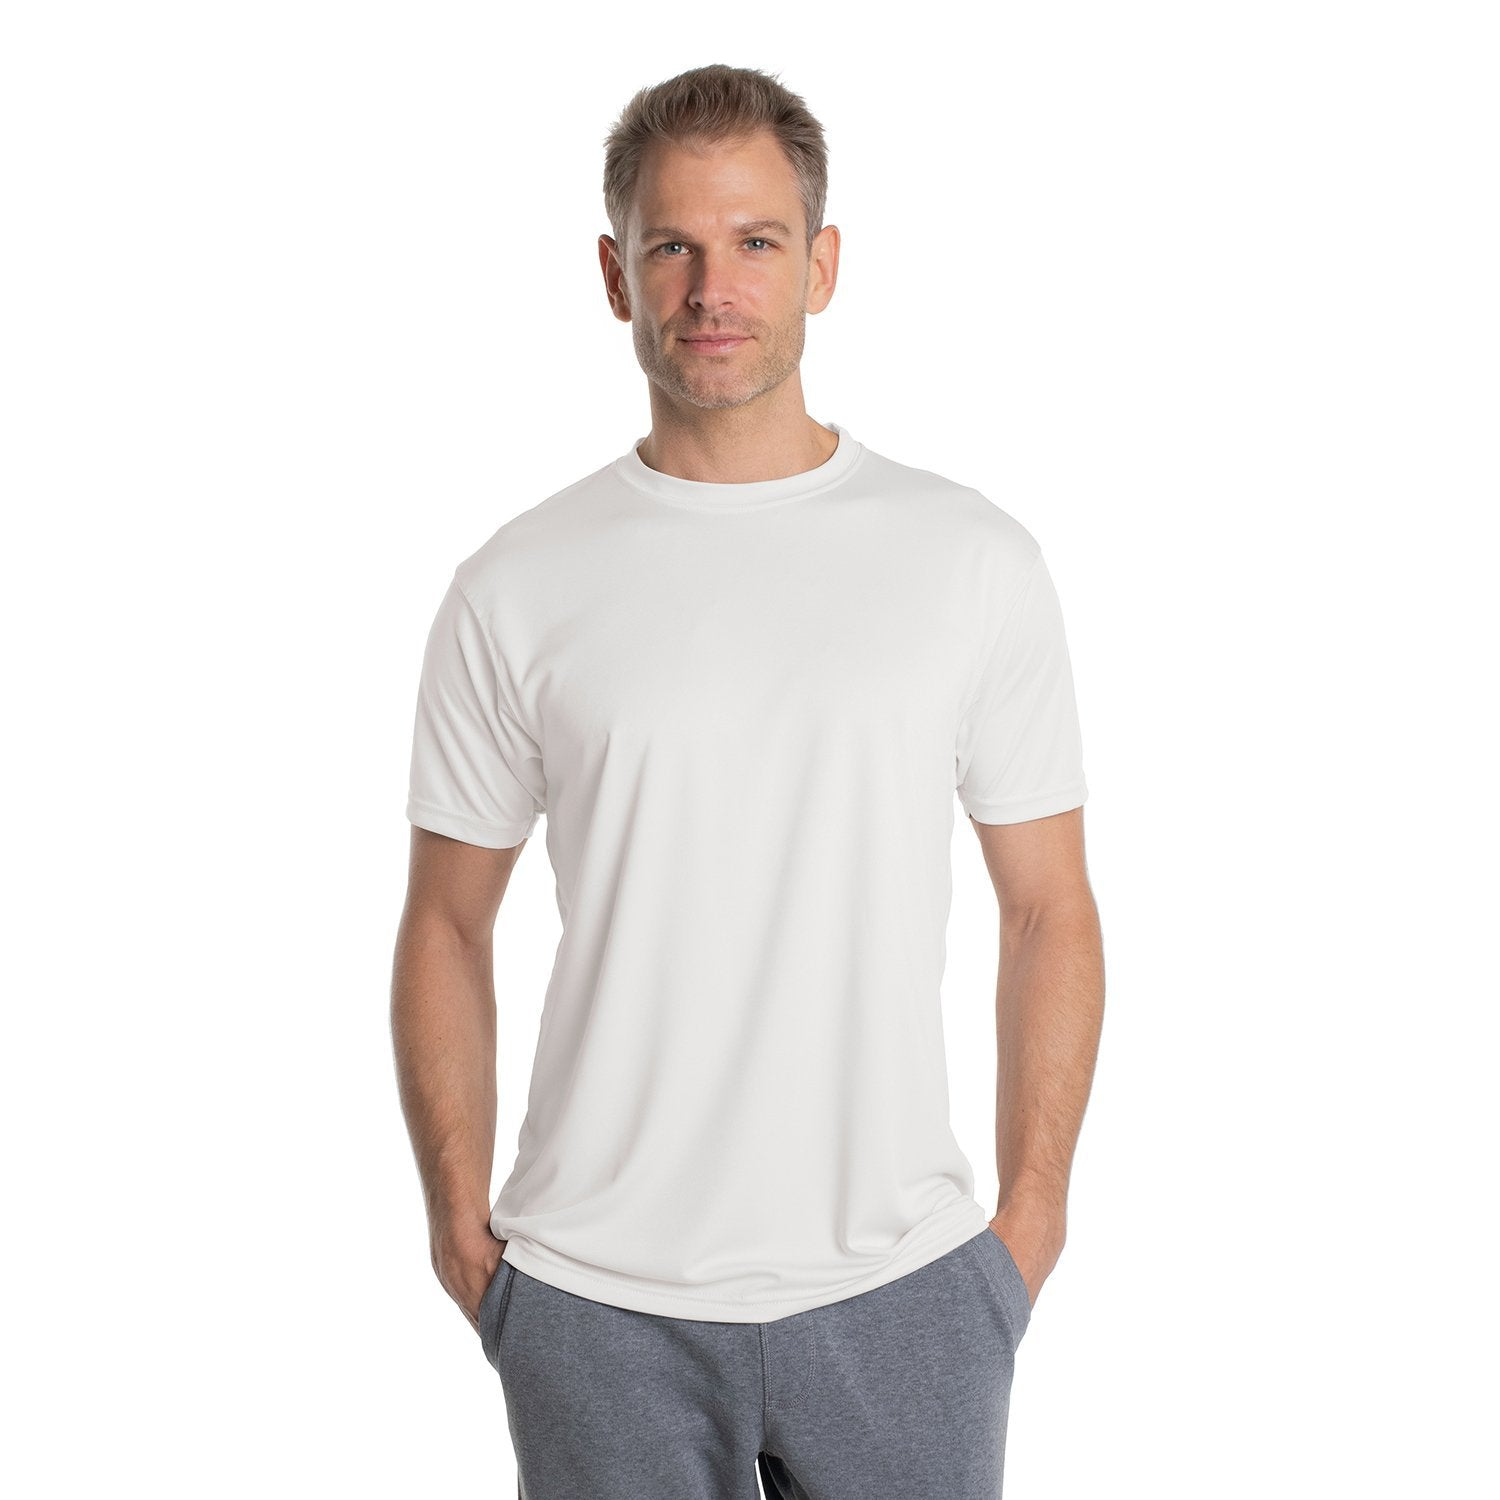 M100WH Solar Short Sleeve - White